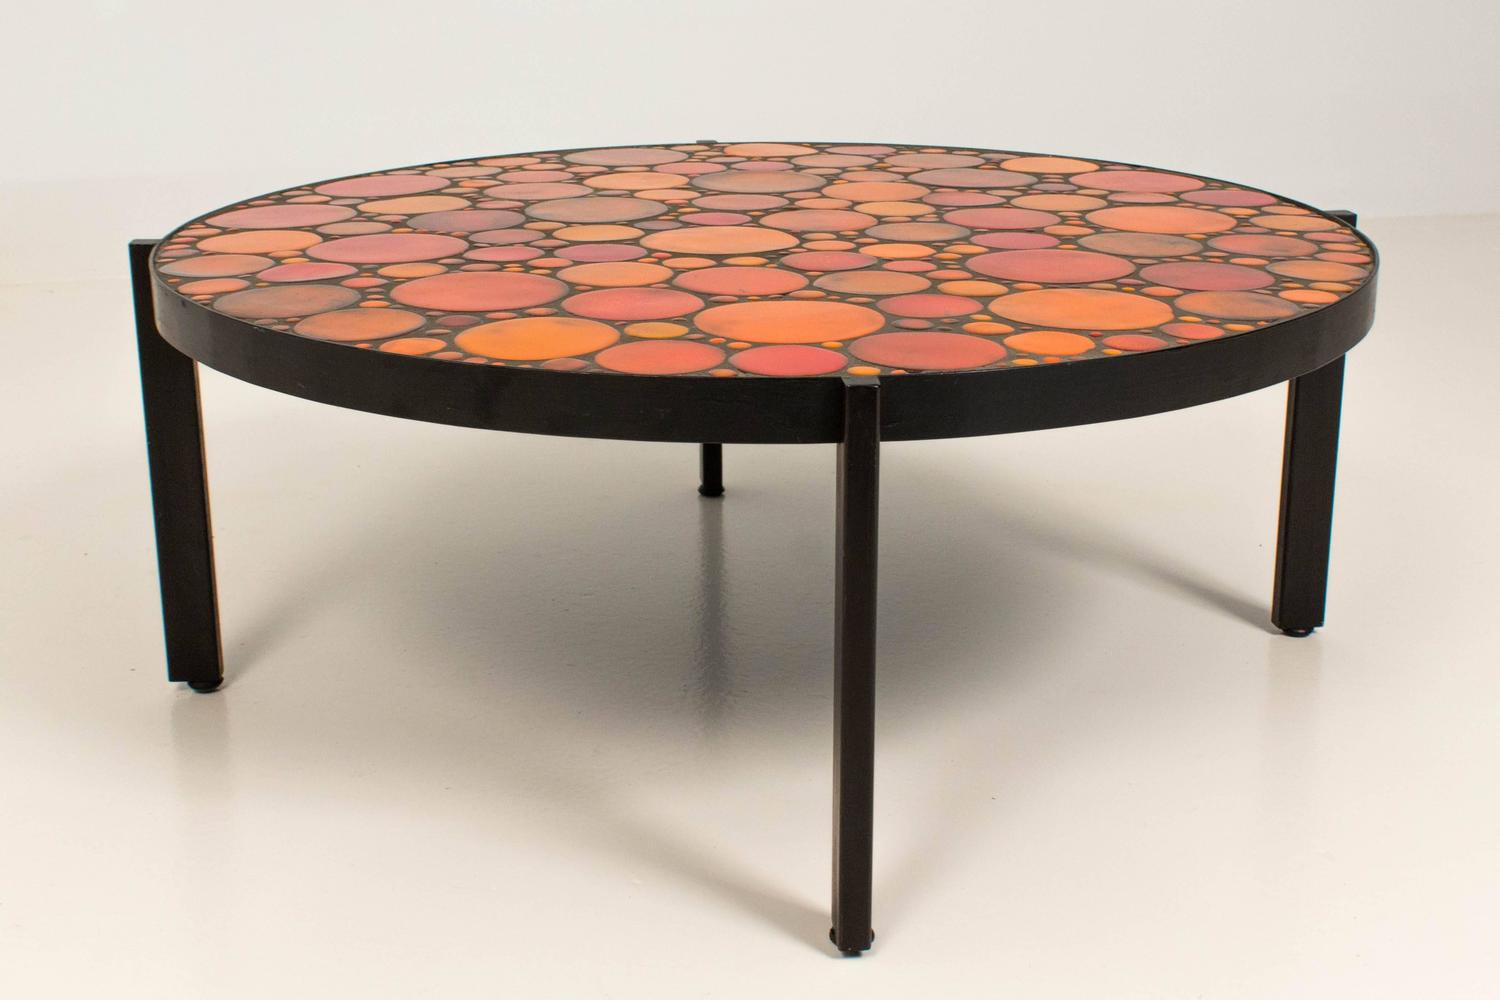 Mid Century Modern Coffee Table With Mosaic Tile Top 1960s At 1stdibs